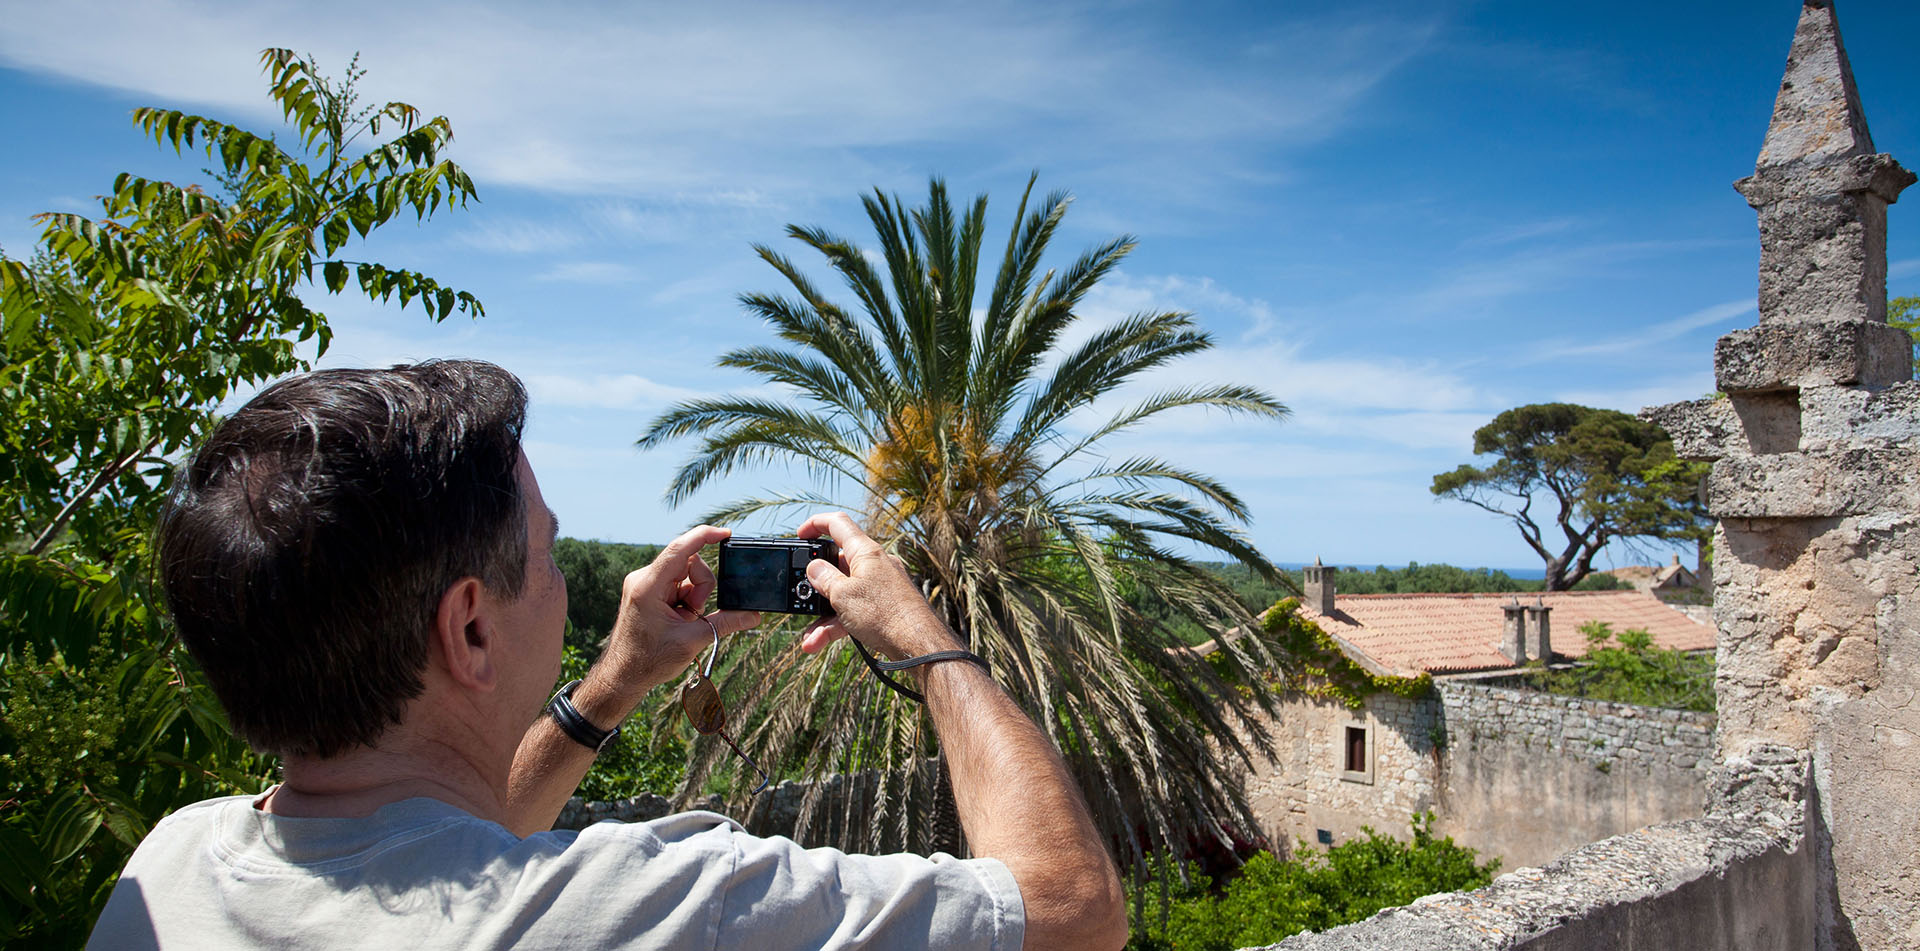 Man using a Camera in Apulia, Italy